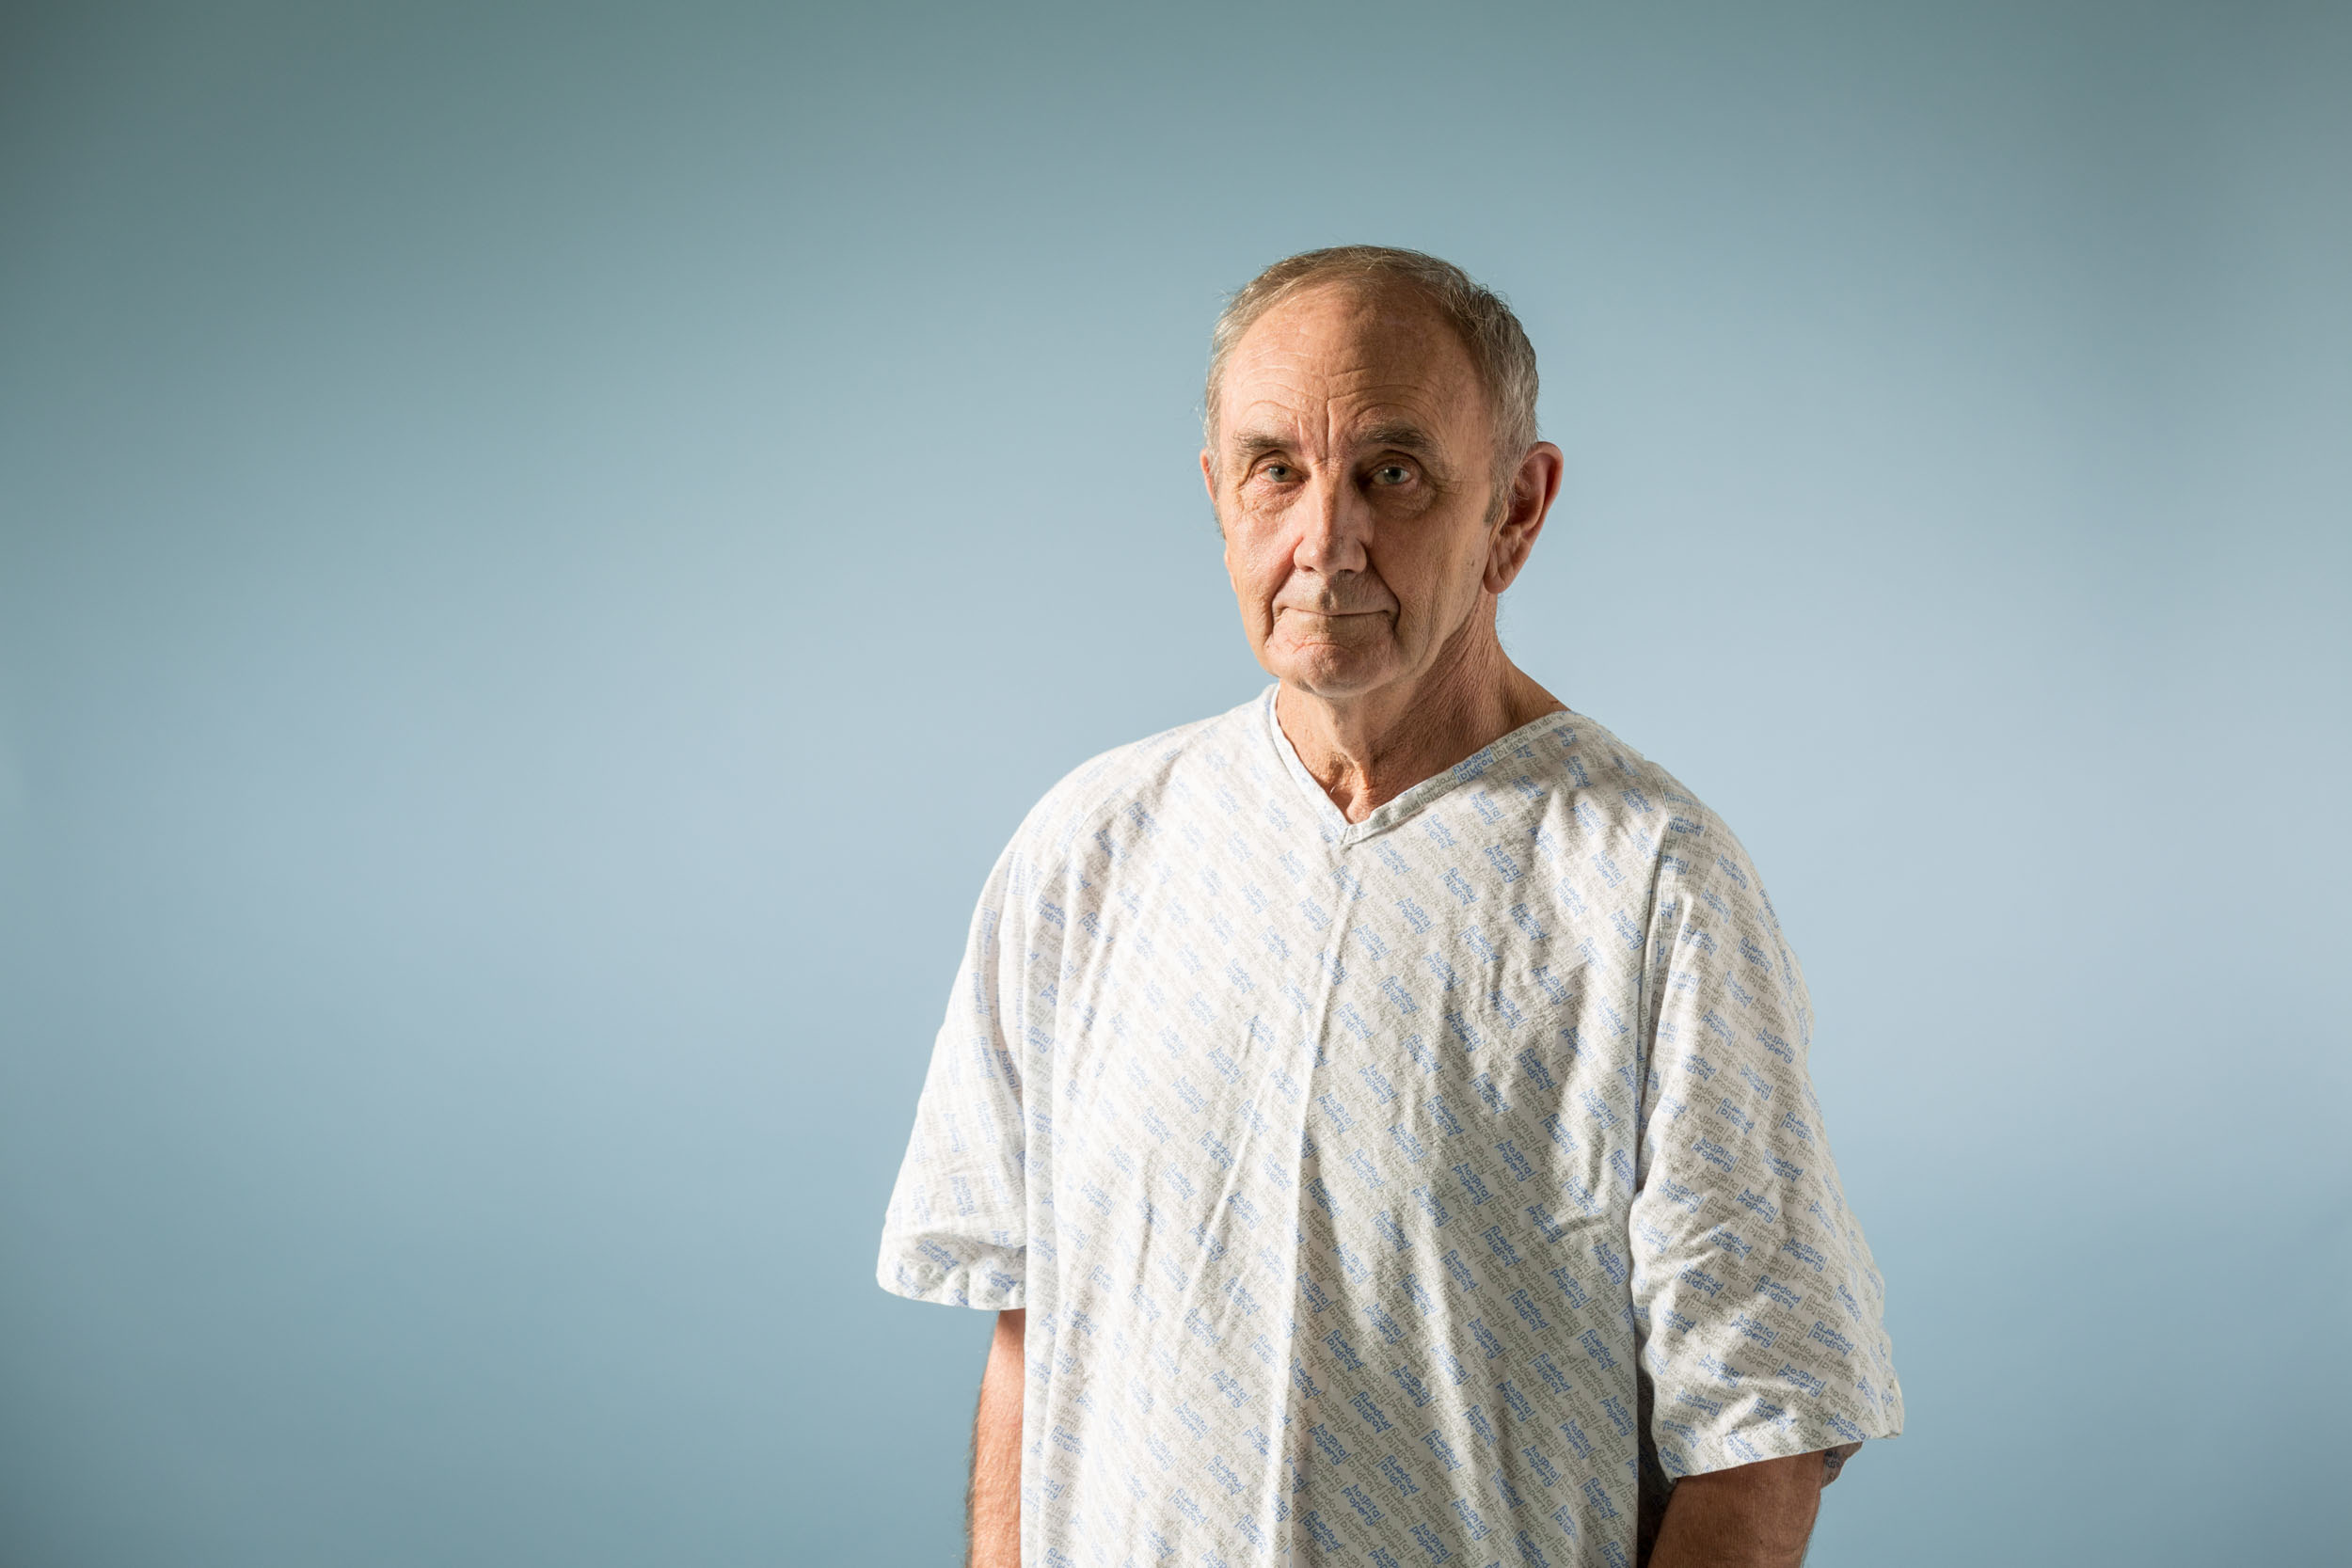 Maia brand photography of a Man in a hospital gown